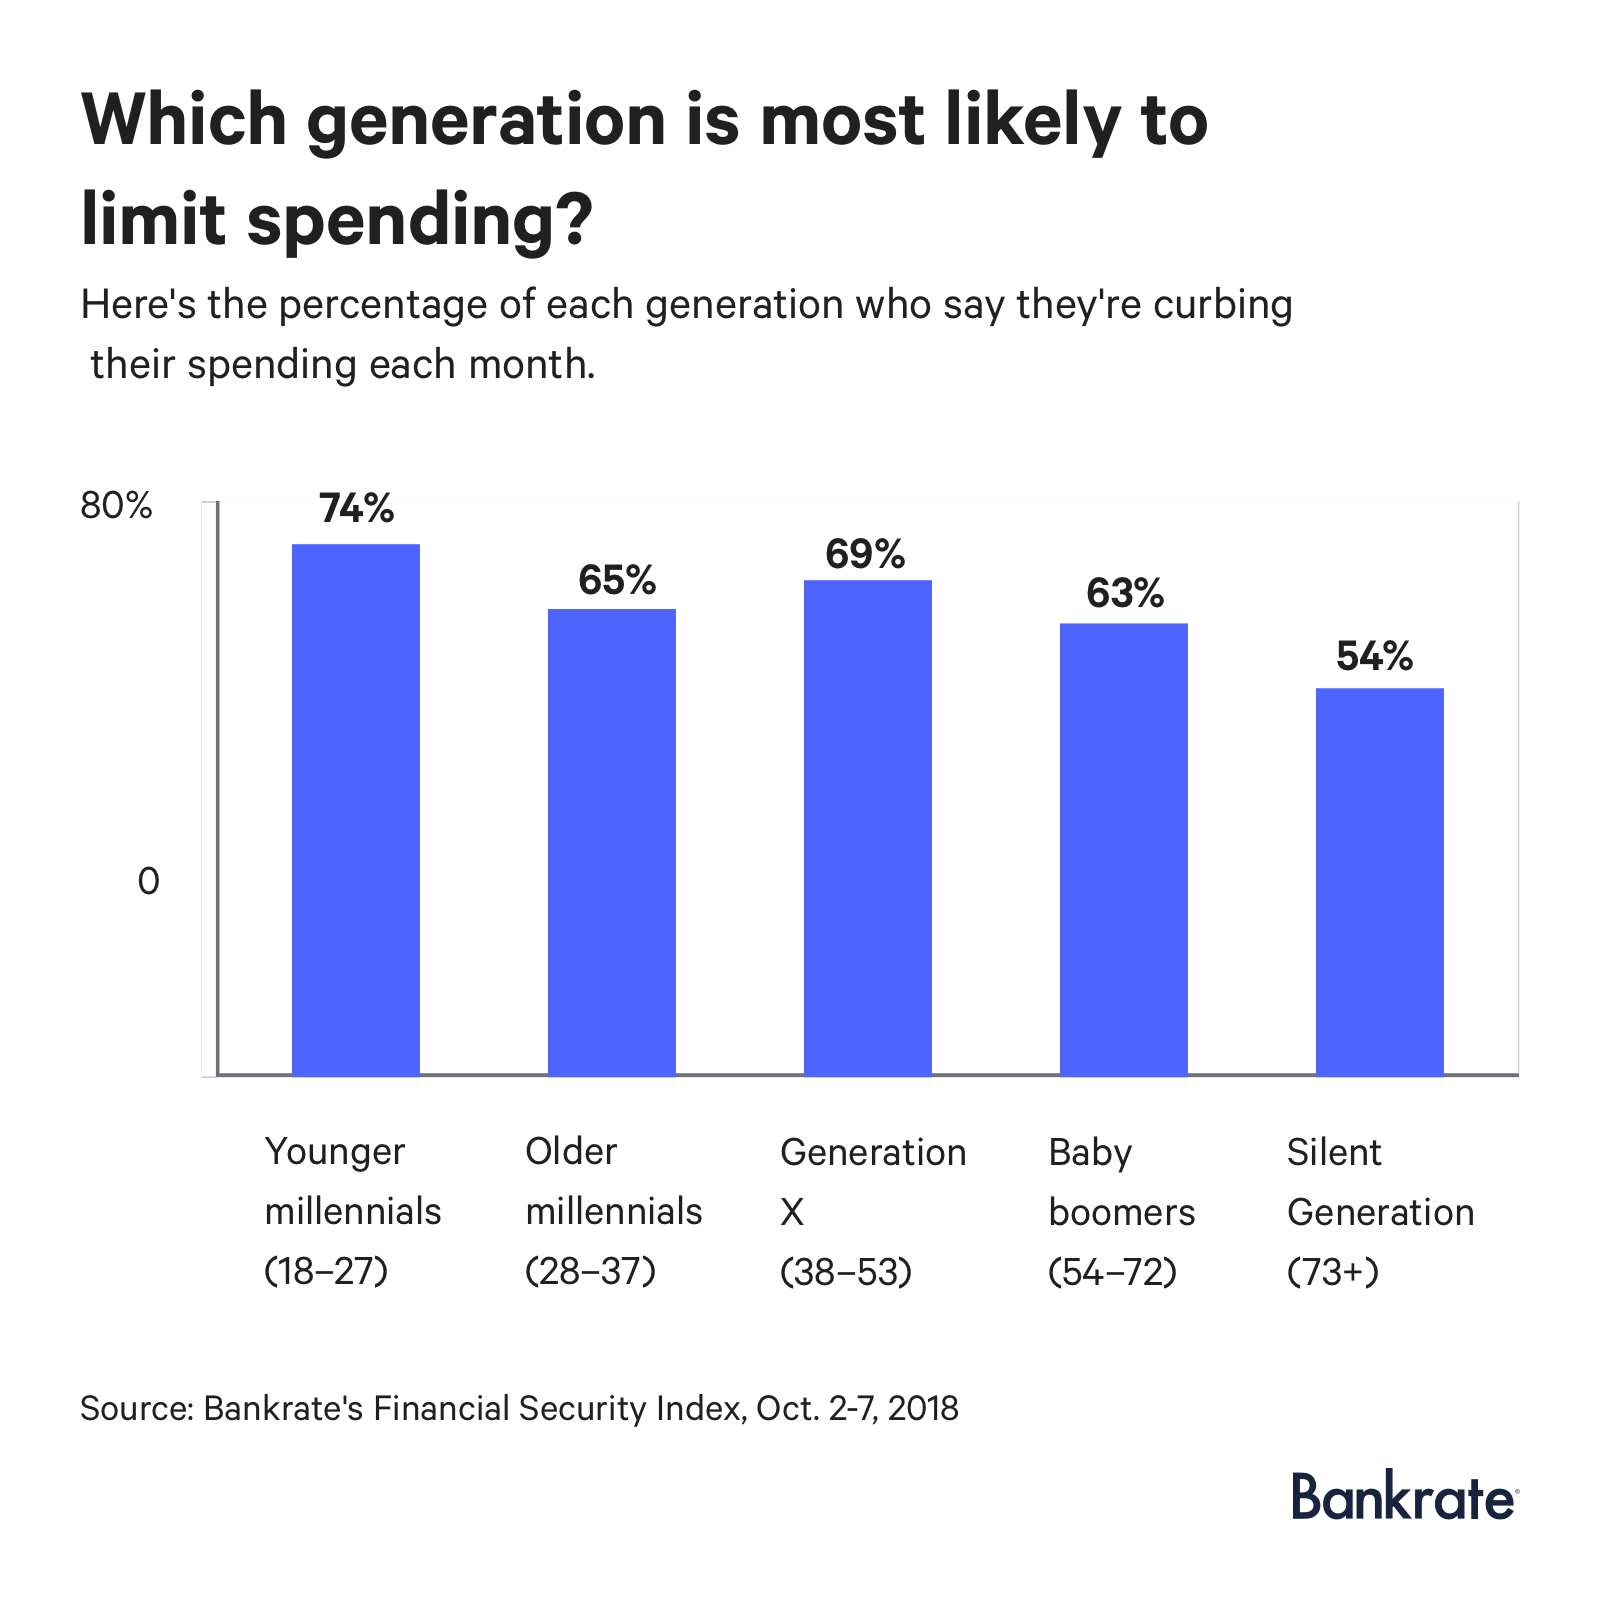 Graph: At 74%, the younger millennials are most likely to limit spending